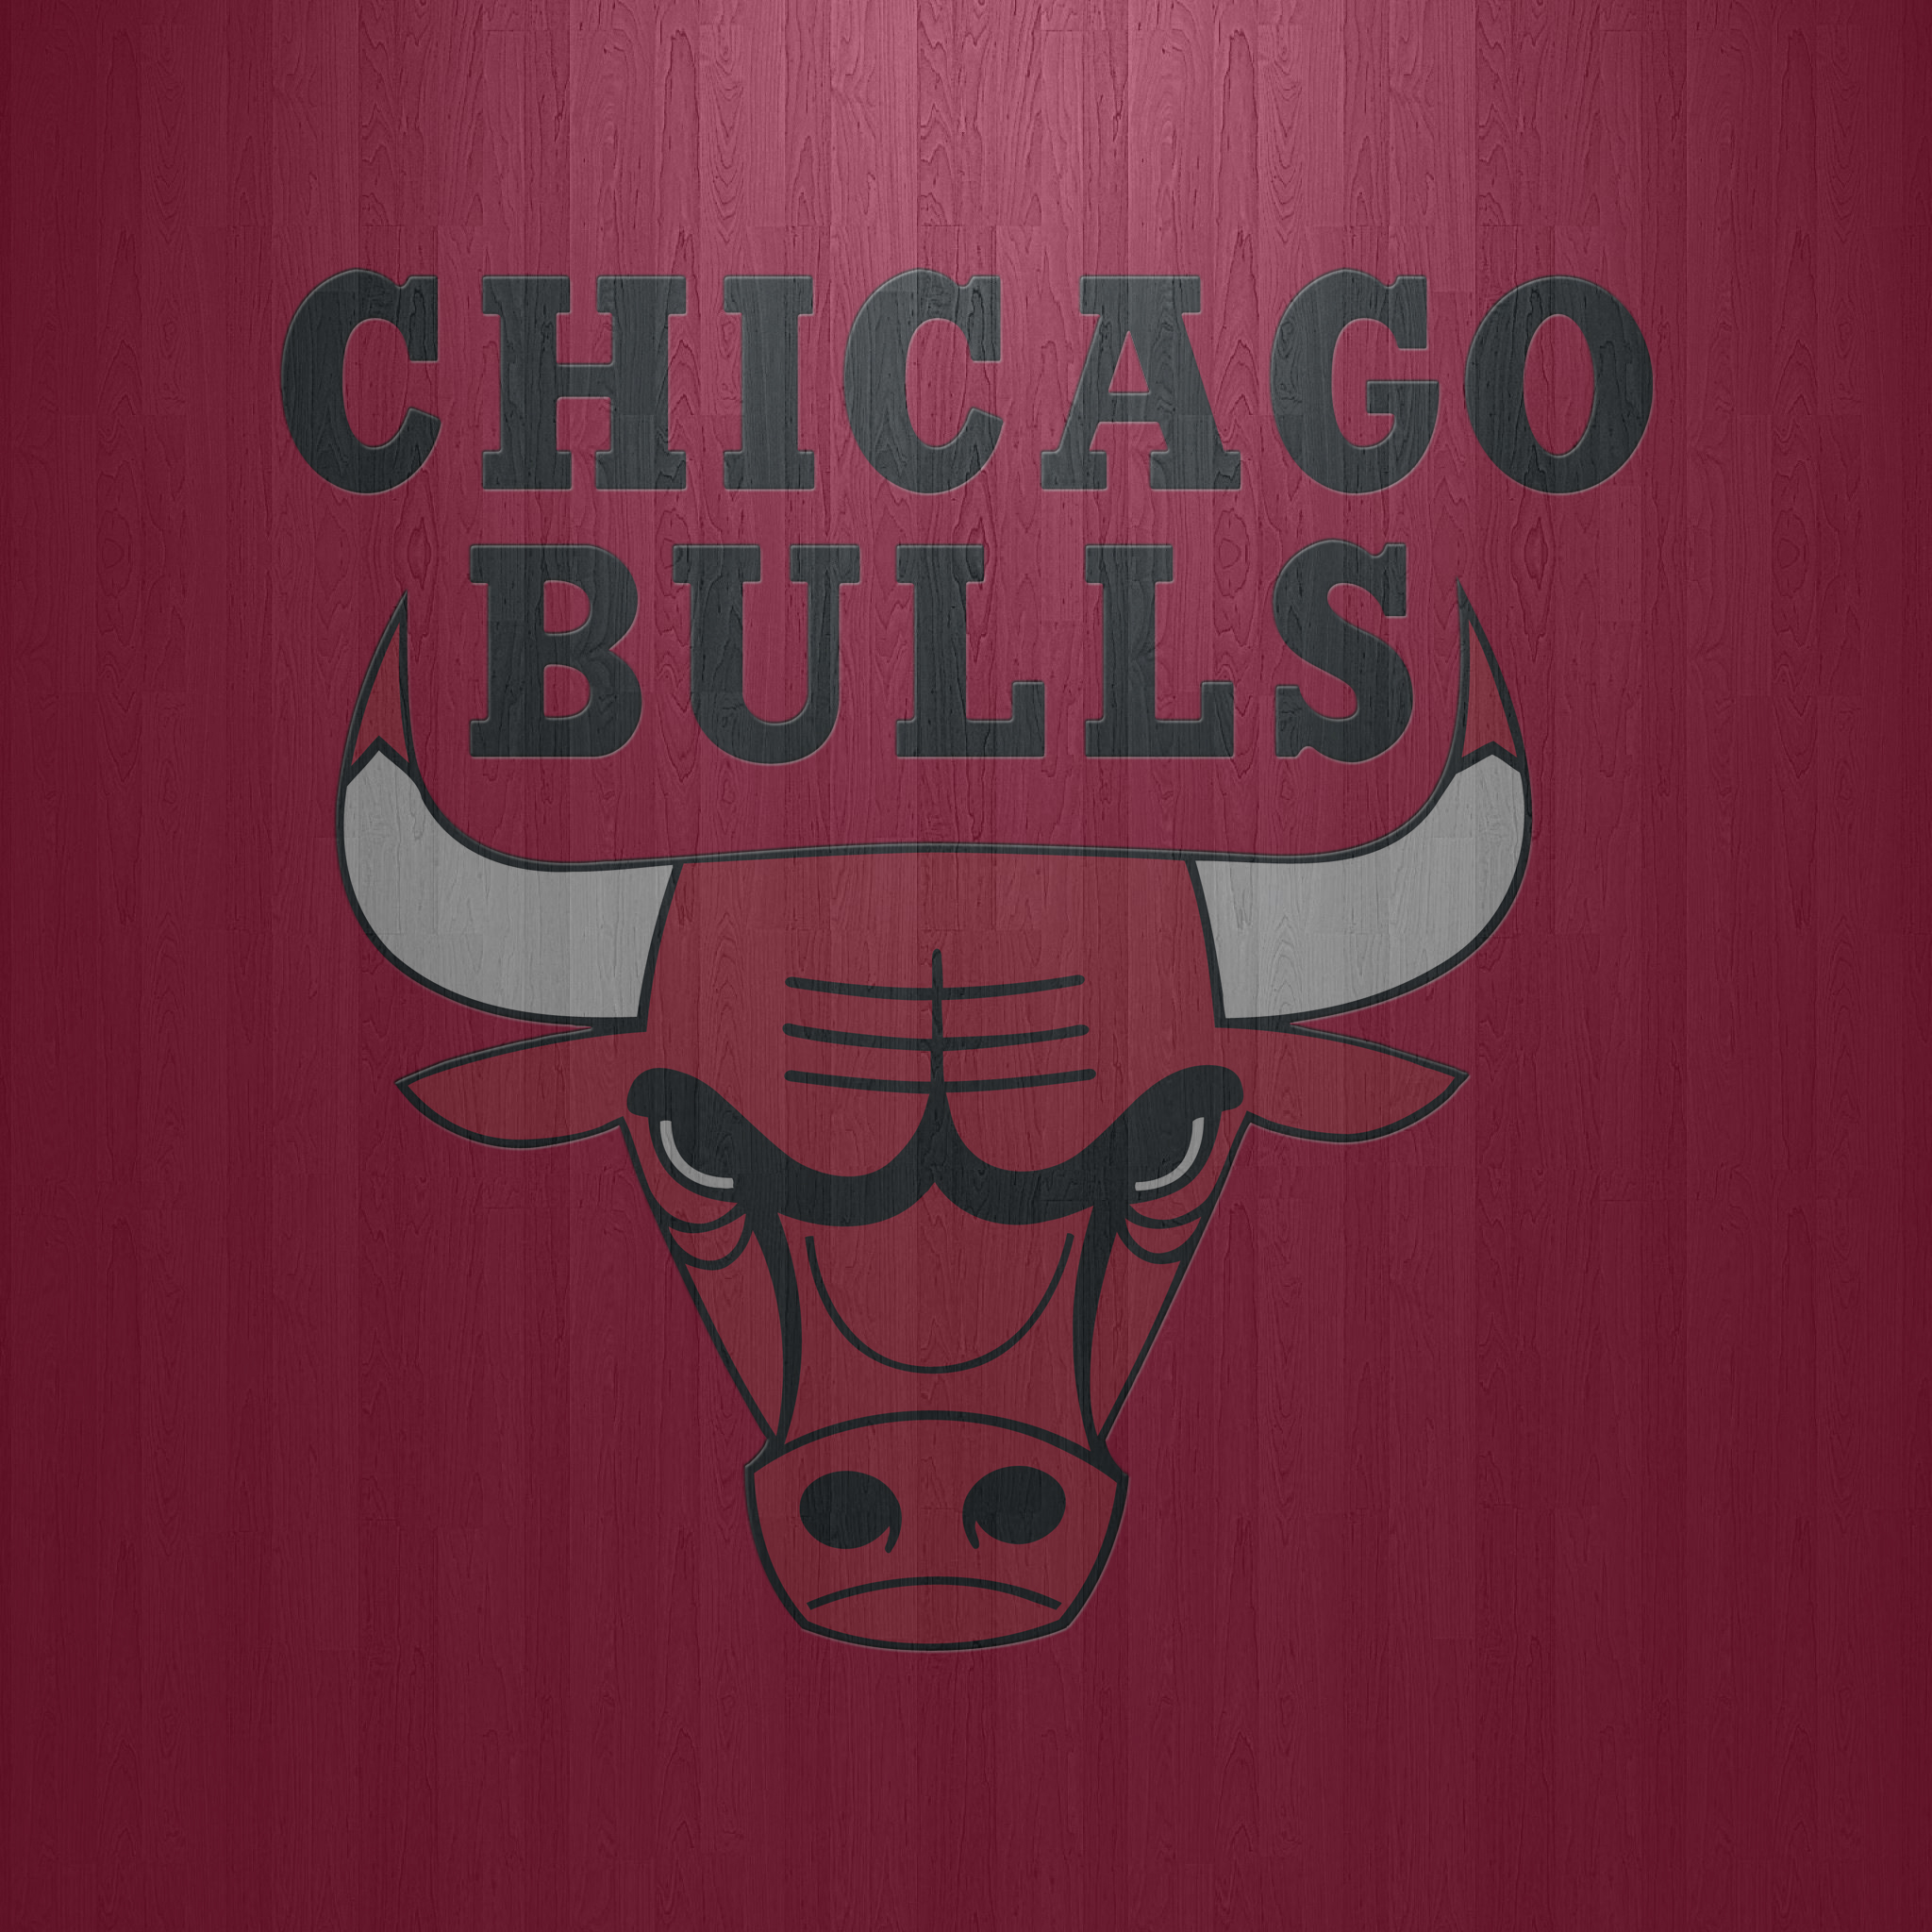 Iphone Chicago Bulls Wallpapers